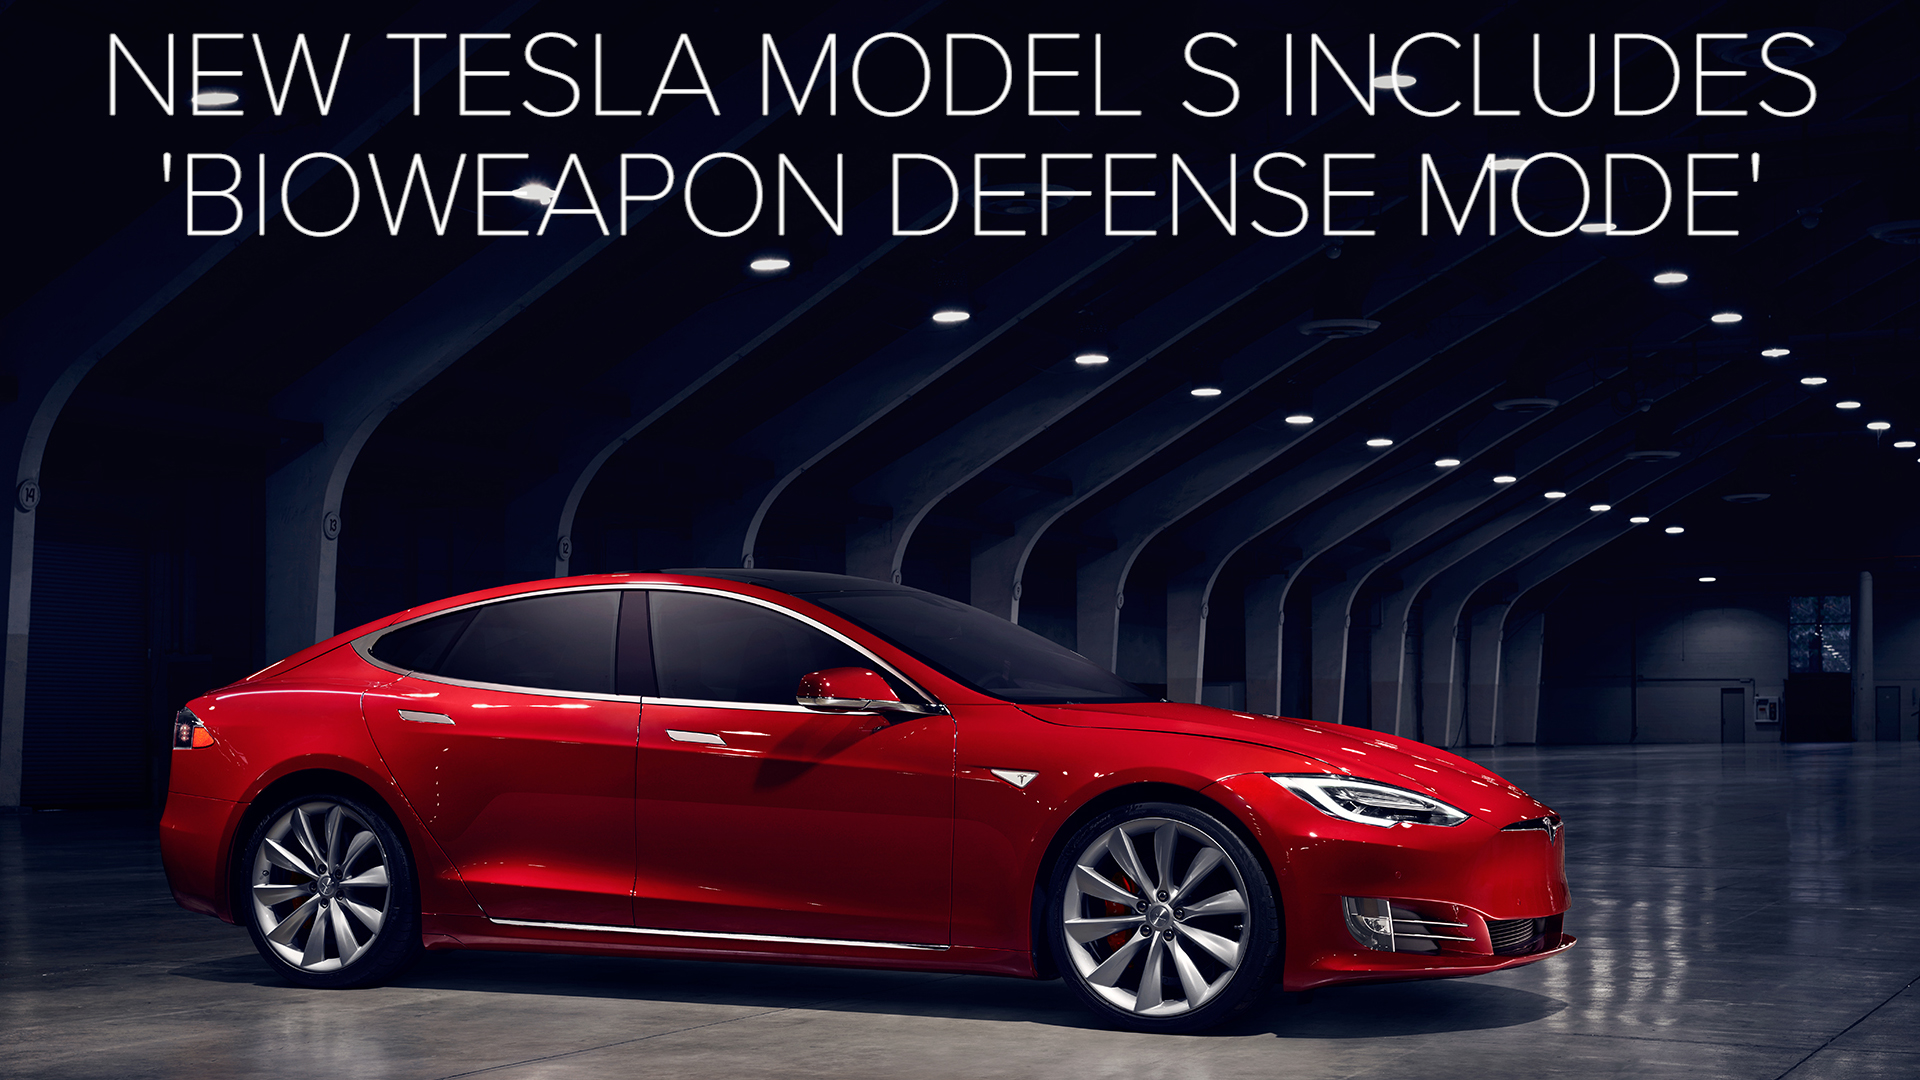 New Tesla Model S includes Bioweapon Defense Mode